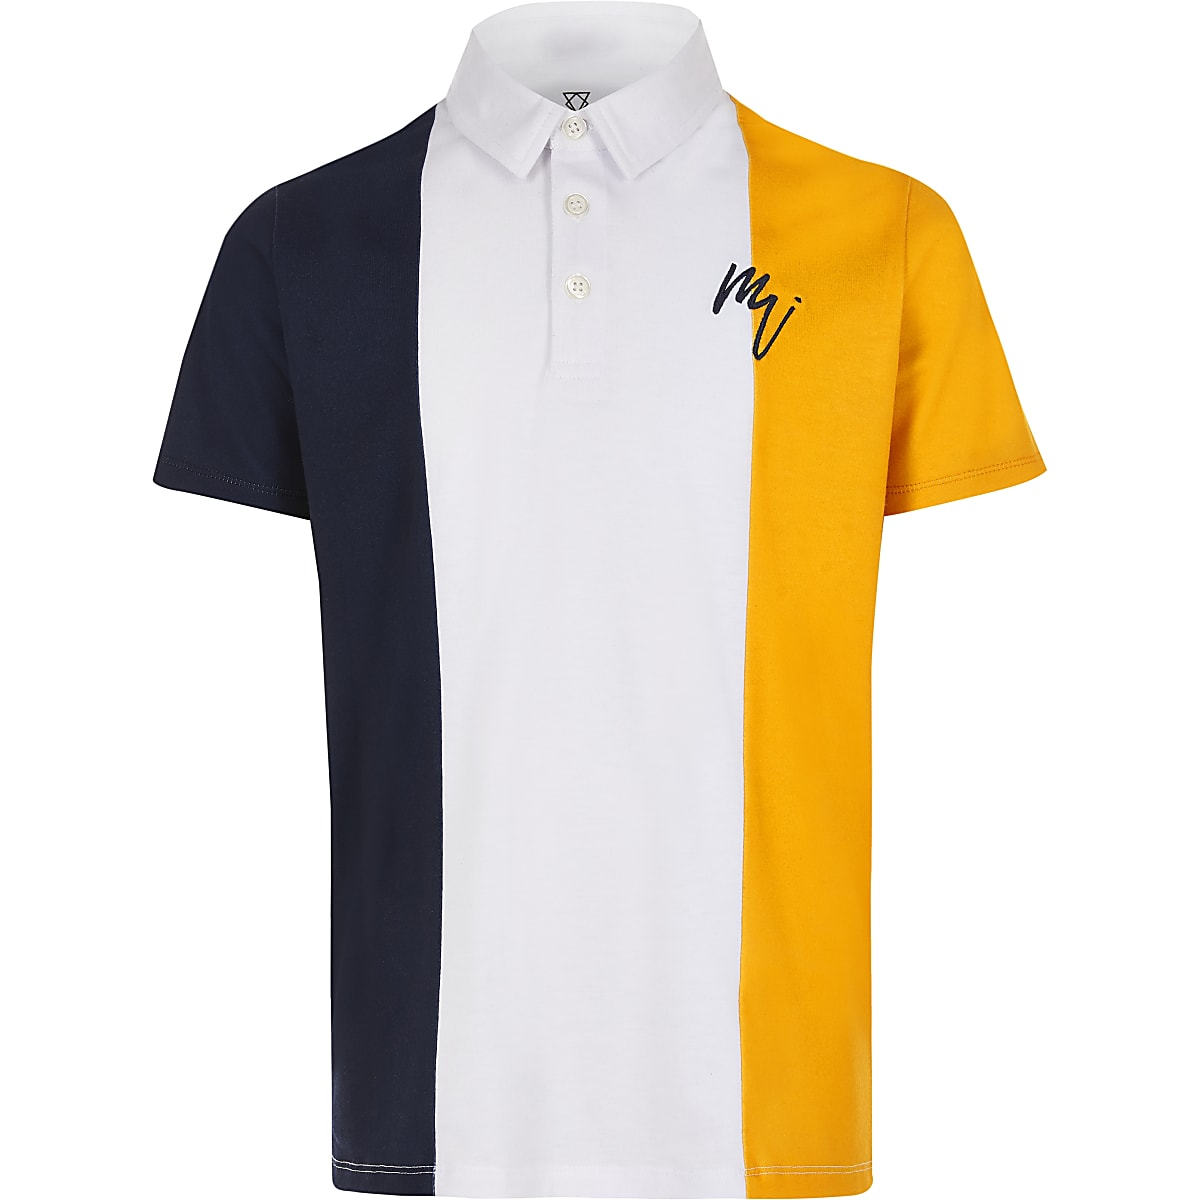 Boys yellow colour blocked polo shirt